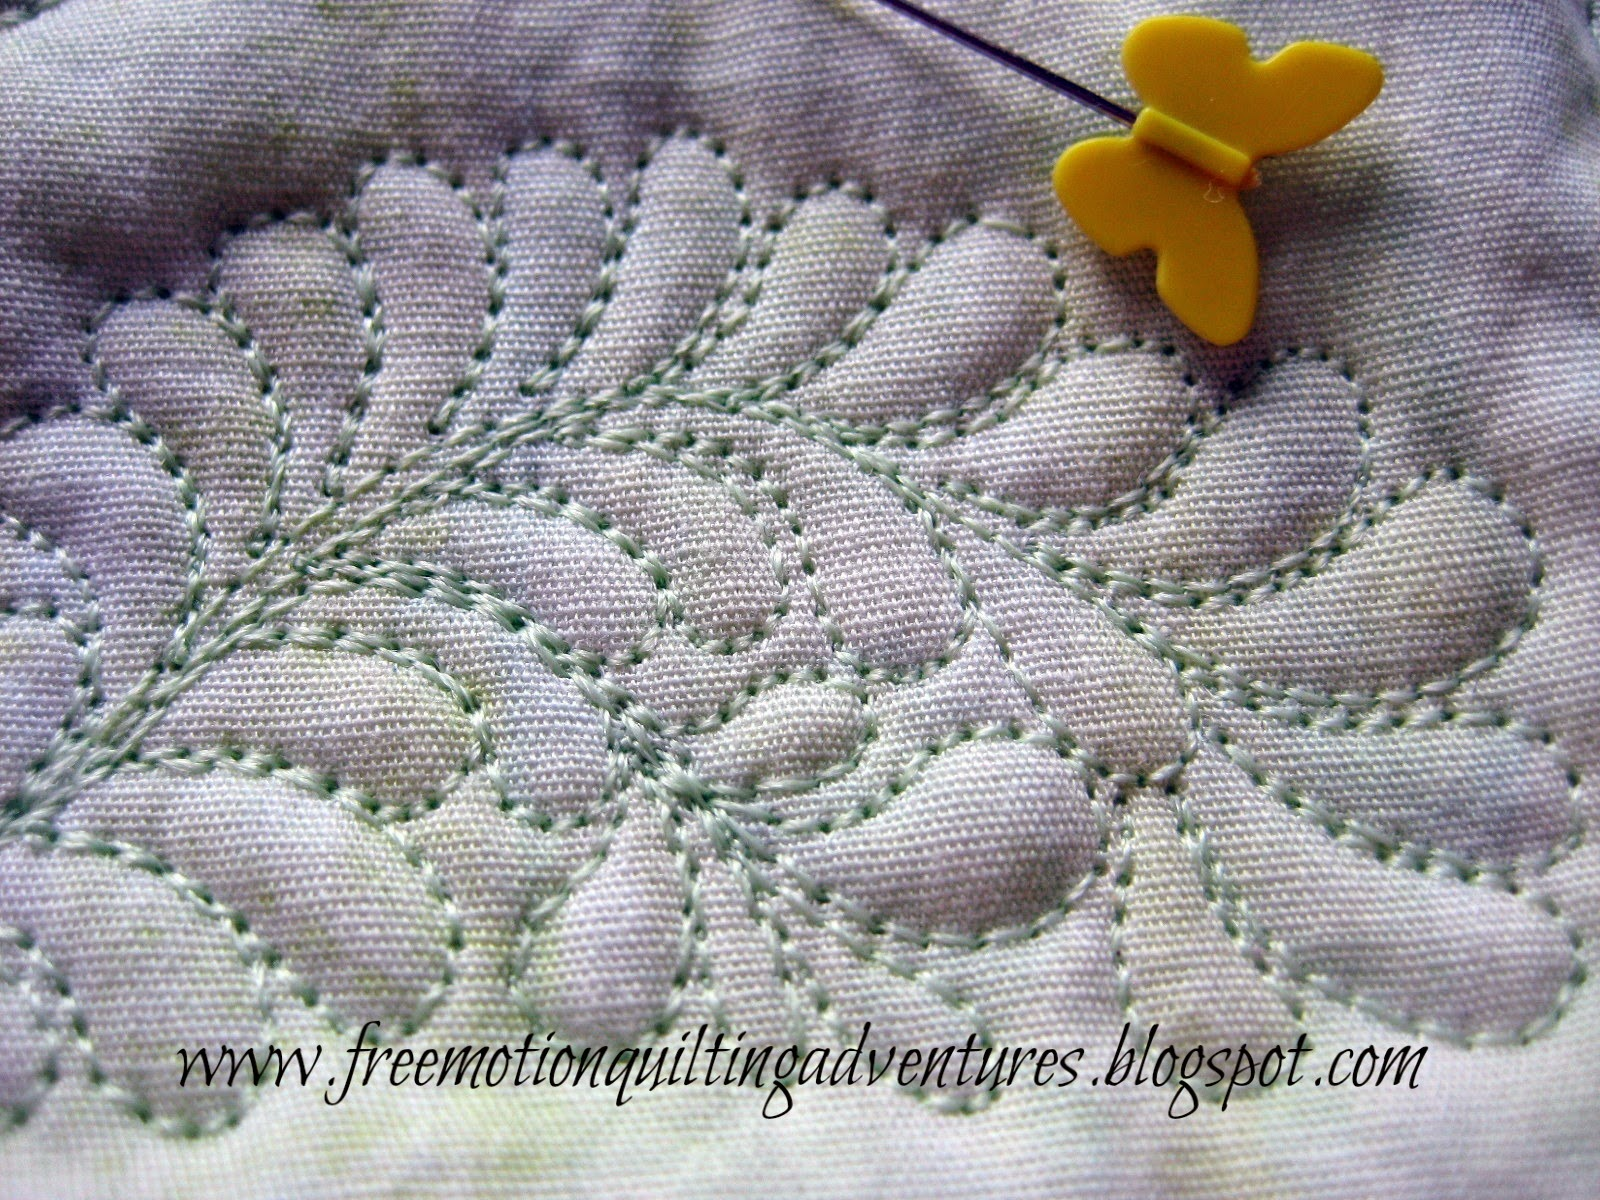 Amy s Free Motion Quilting Adventures: Free Motion Monday Quilting Adventure: Feathers